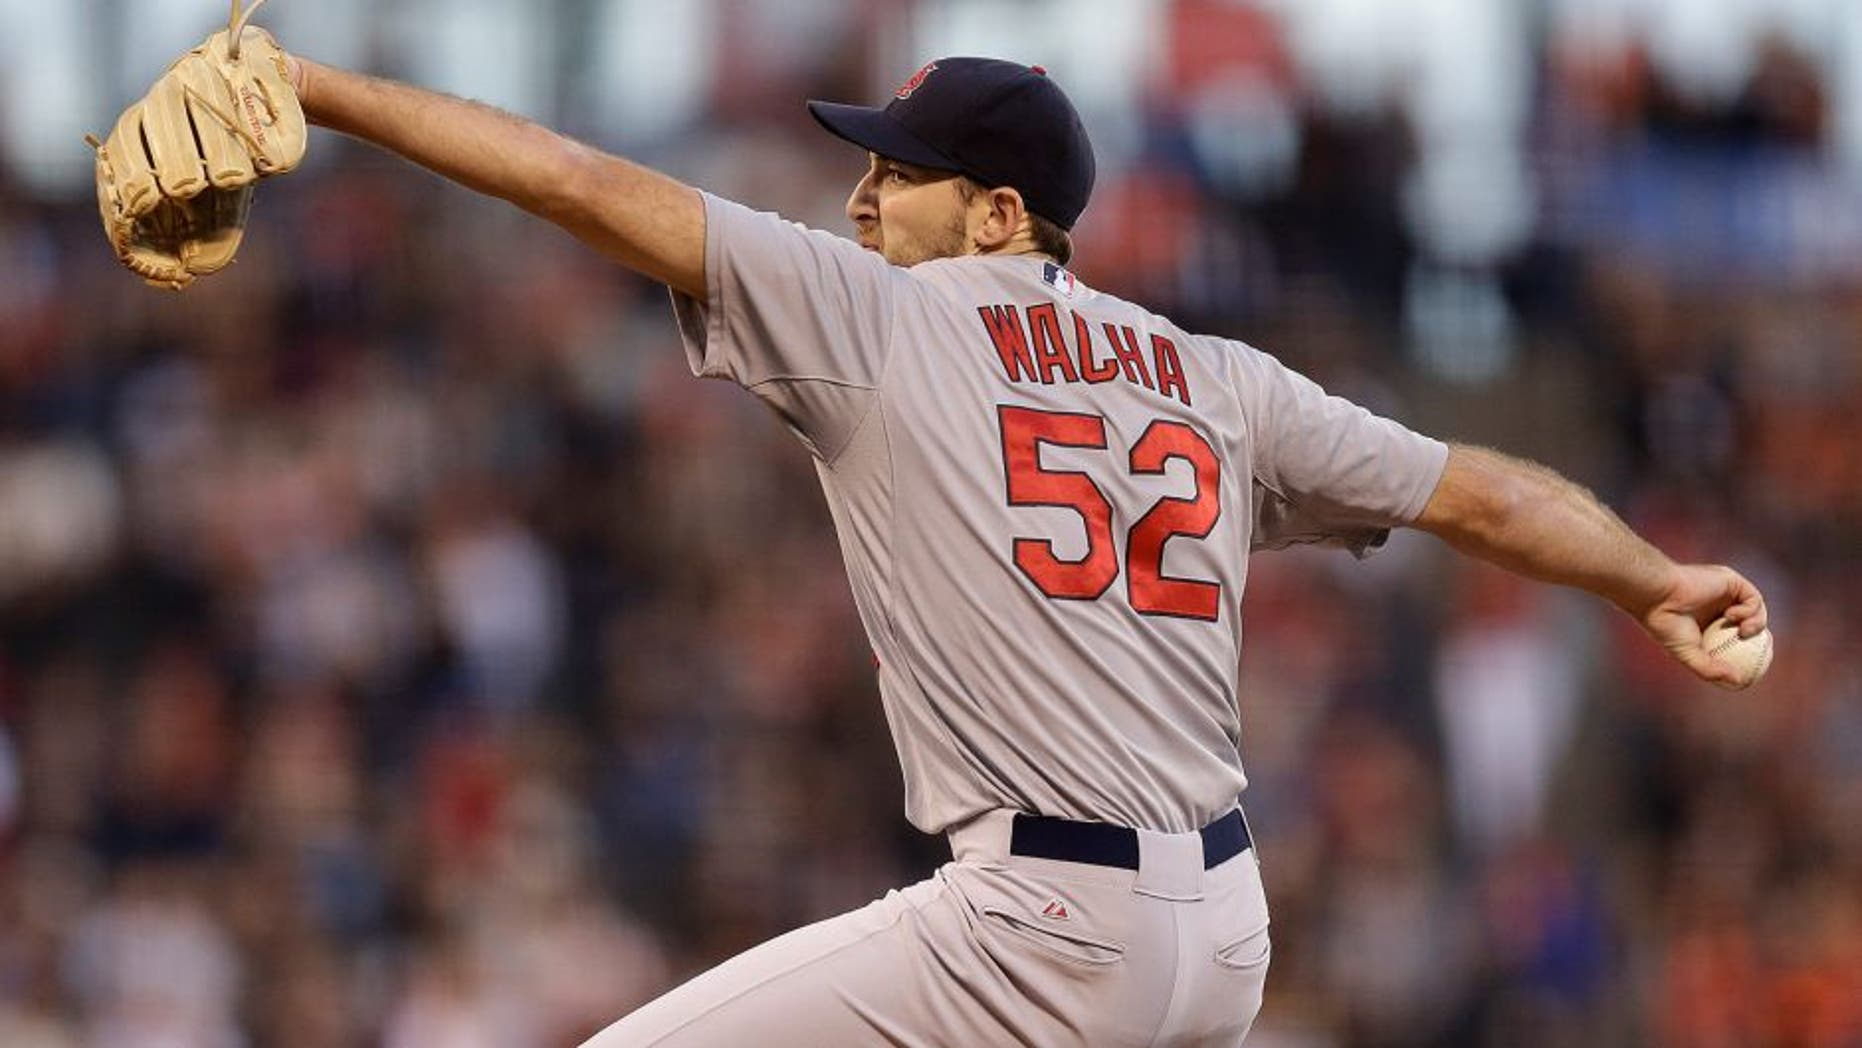 St. Louis Cardinals pitcher Michael Wacha works against the San Francisco Giants during the first inning of a baseball game Friday, Aug. 28, 2015, in San Francisco. (AP Photo/Ben Margot)